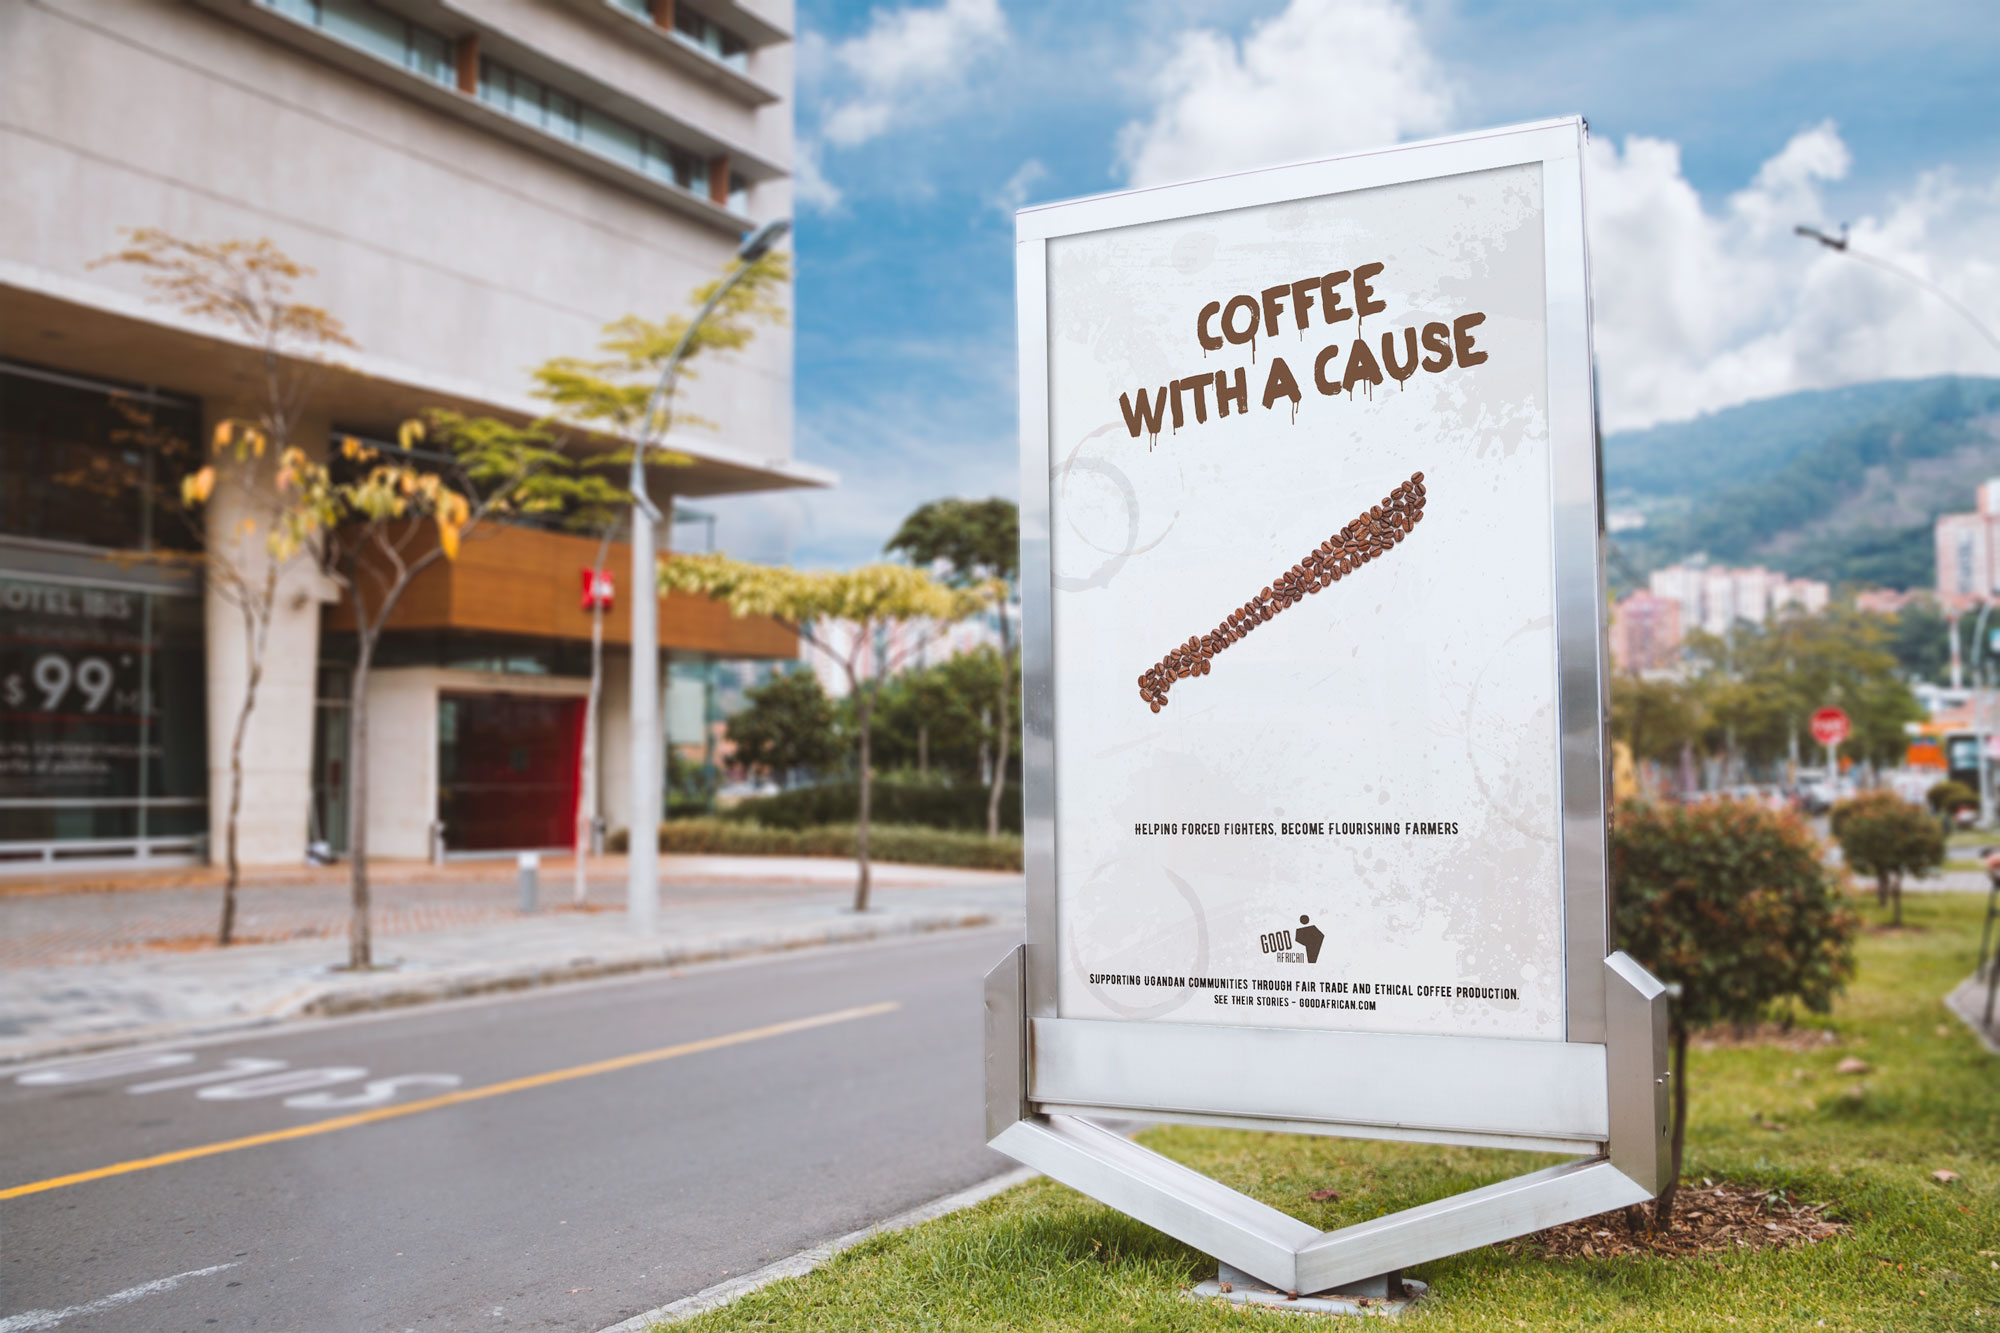 Billboard-Outdoor-Advertising-Mockup.jpg